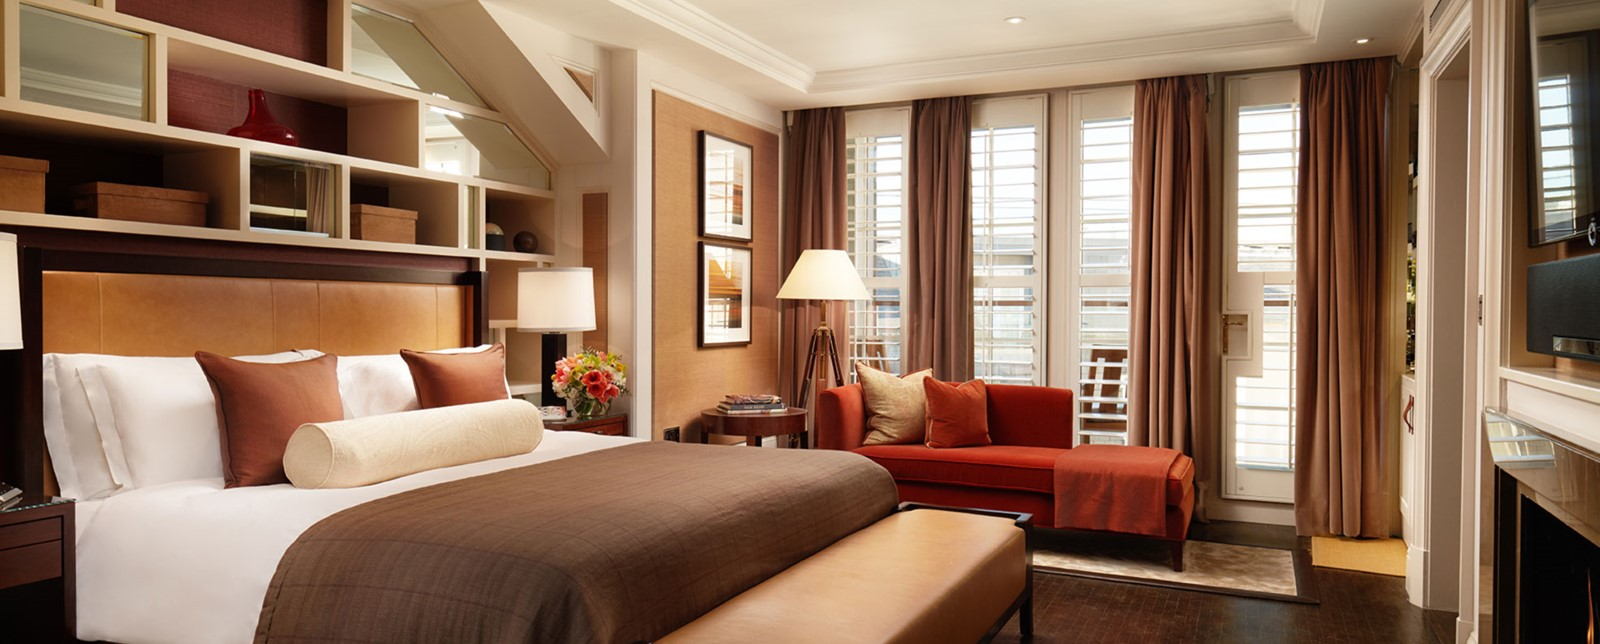 corinthia london explorers bedroom